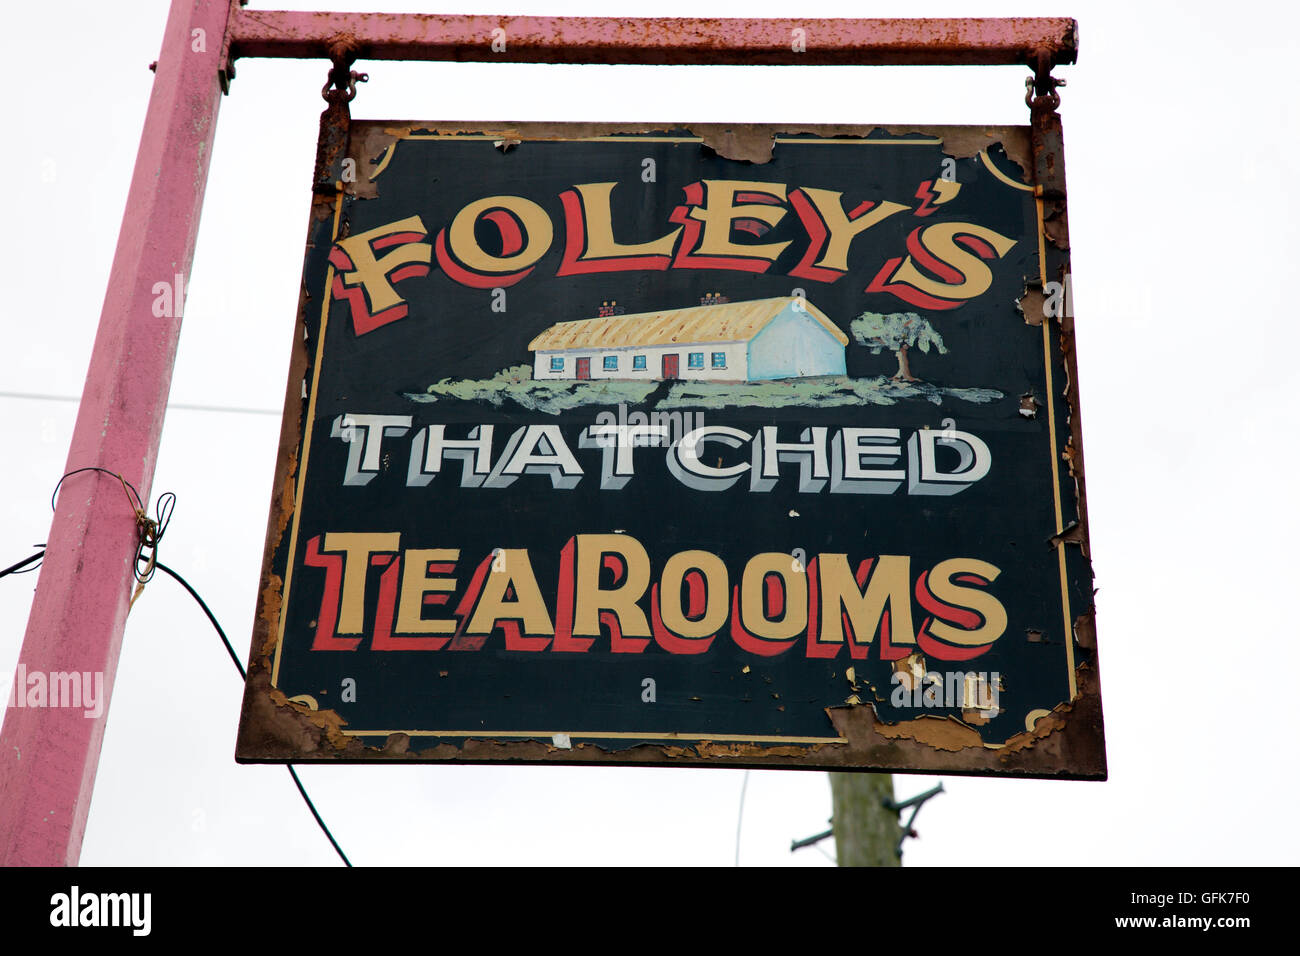 sign for Foley's thatched 18th century tearoom in Castlebellingham - Stock Image